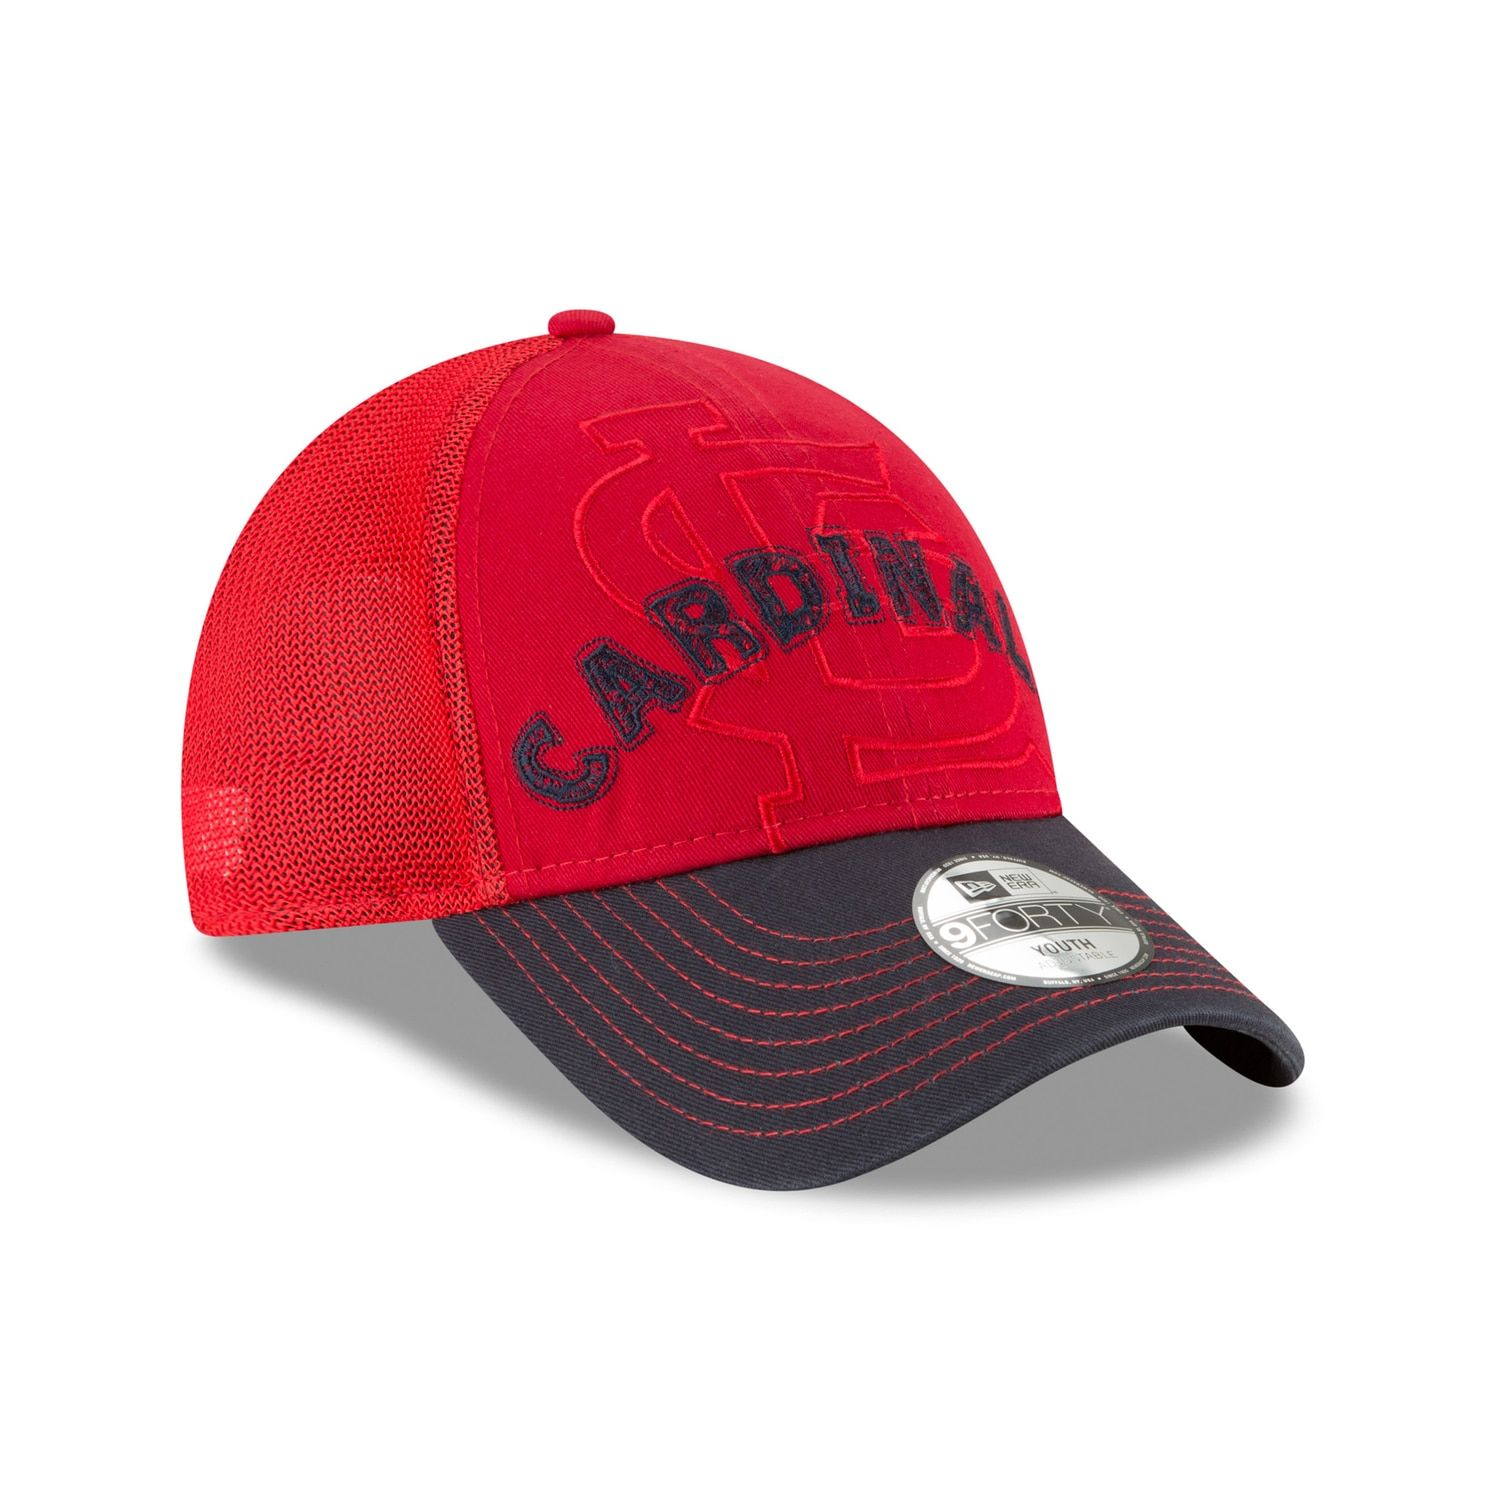 888b62350cd Youth New Era St. Louis Cardinals 9FORTY Stitcher Adjustable Cap  Affiliate   St